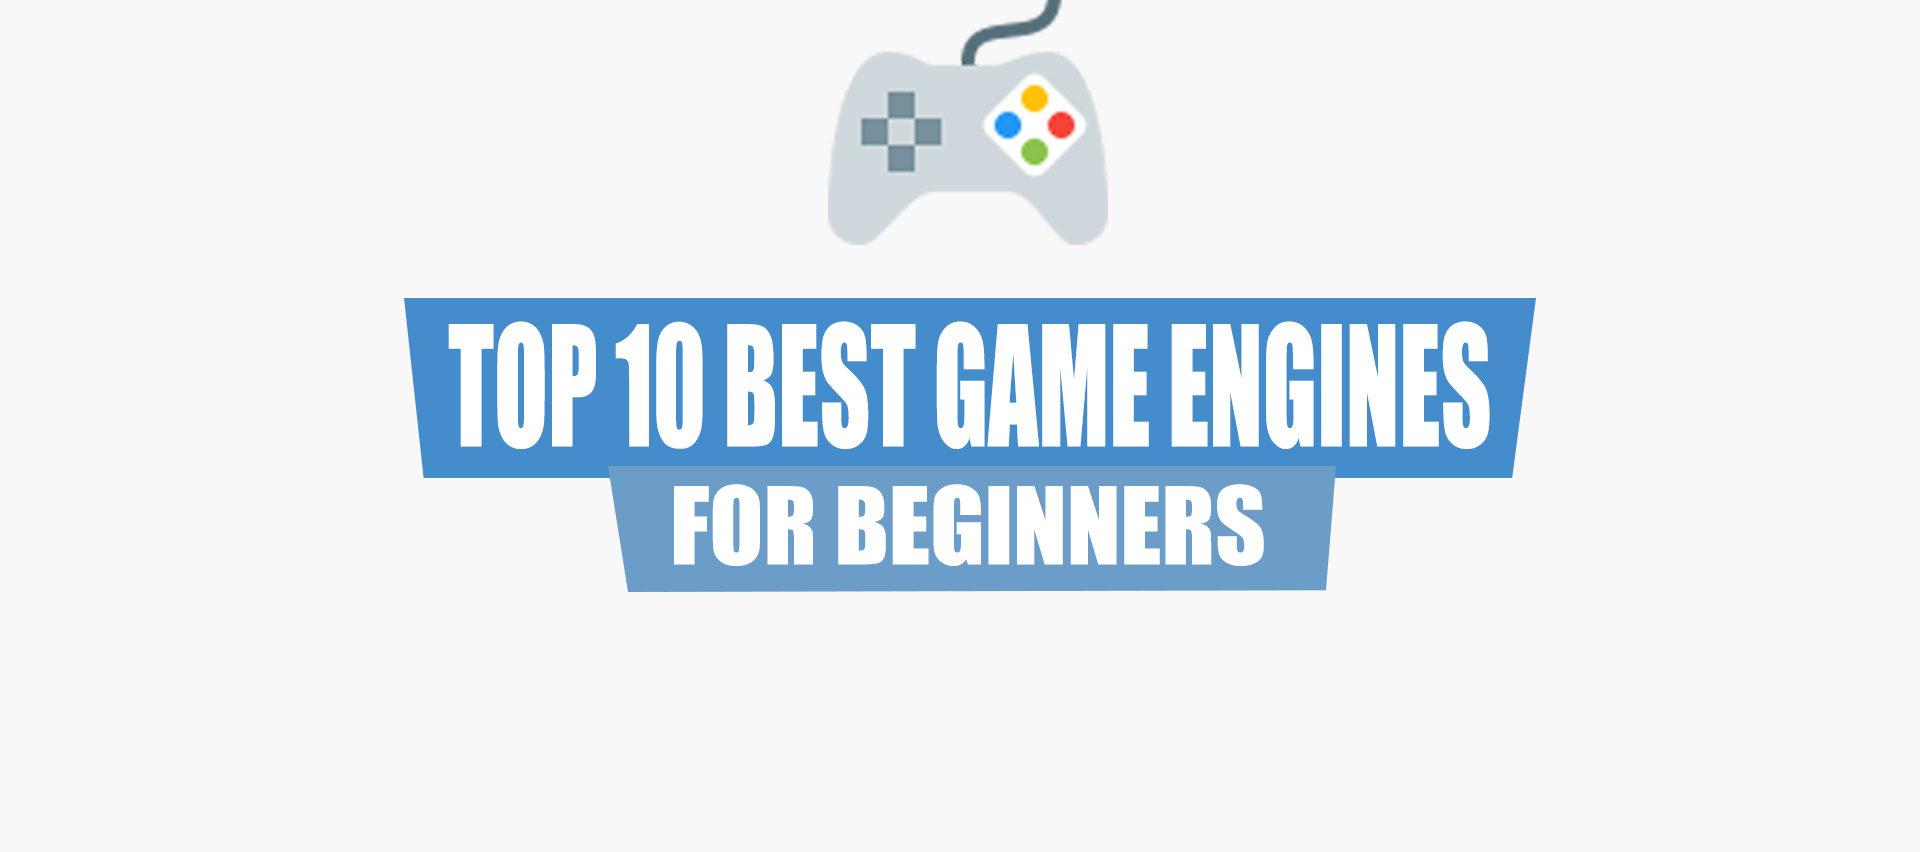 Top 10 Best Game Engine for Beginners